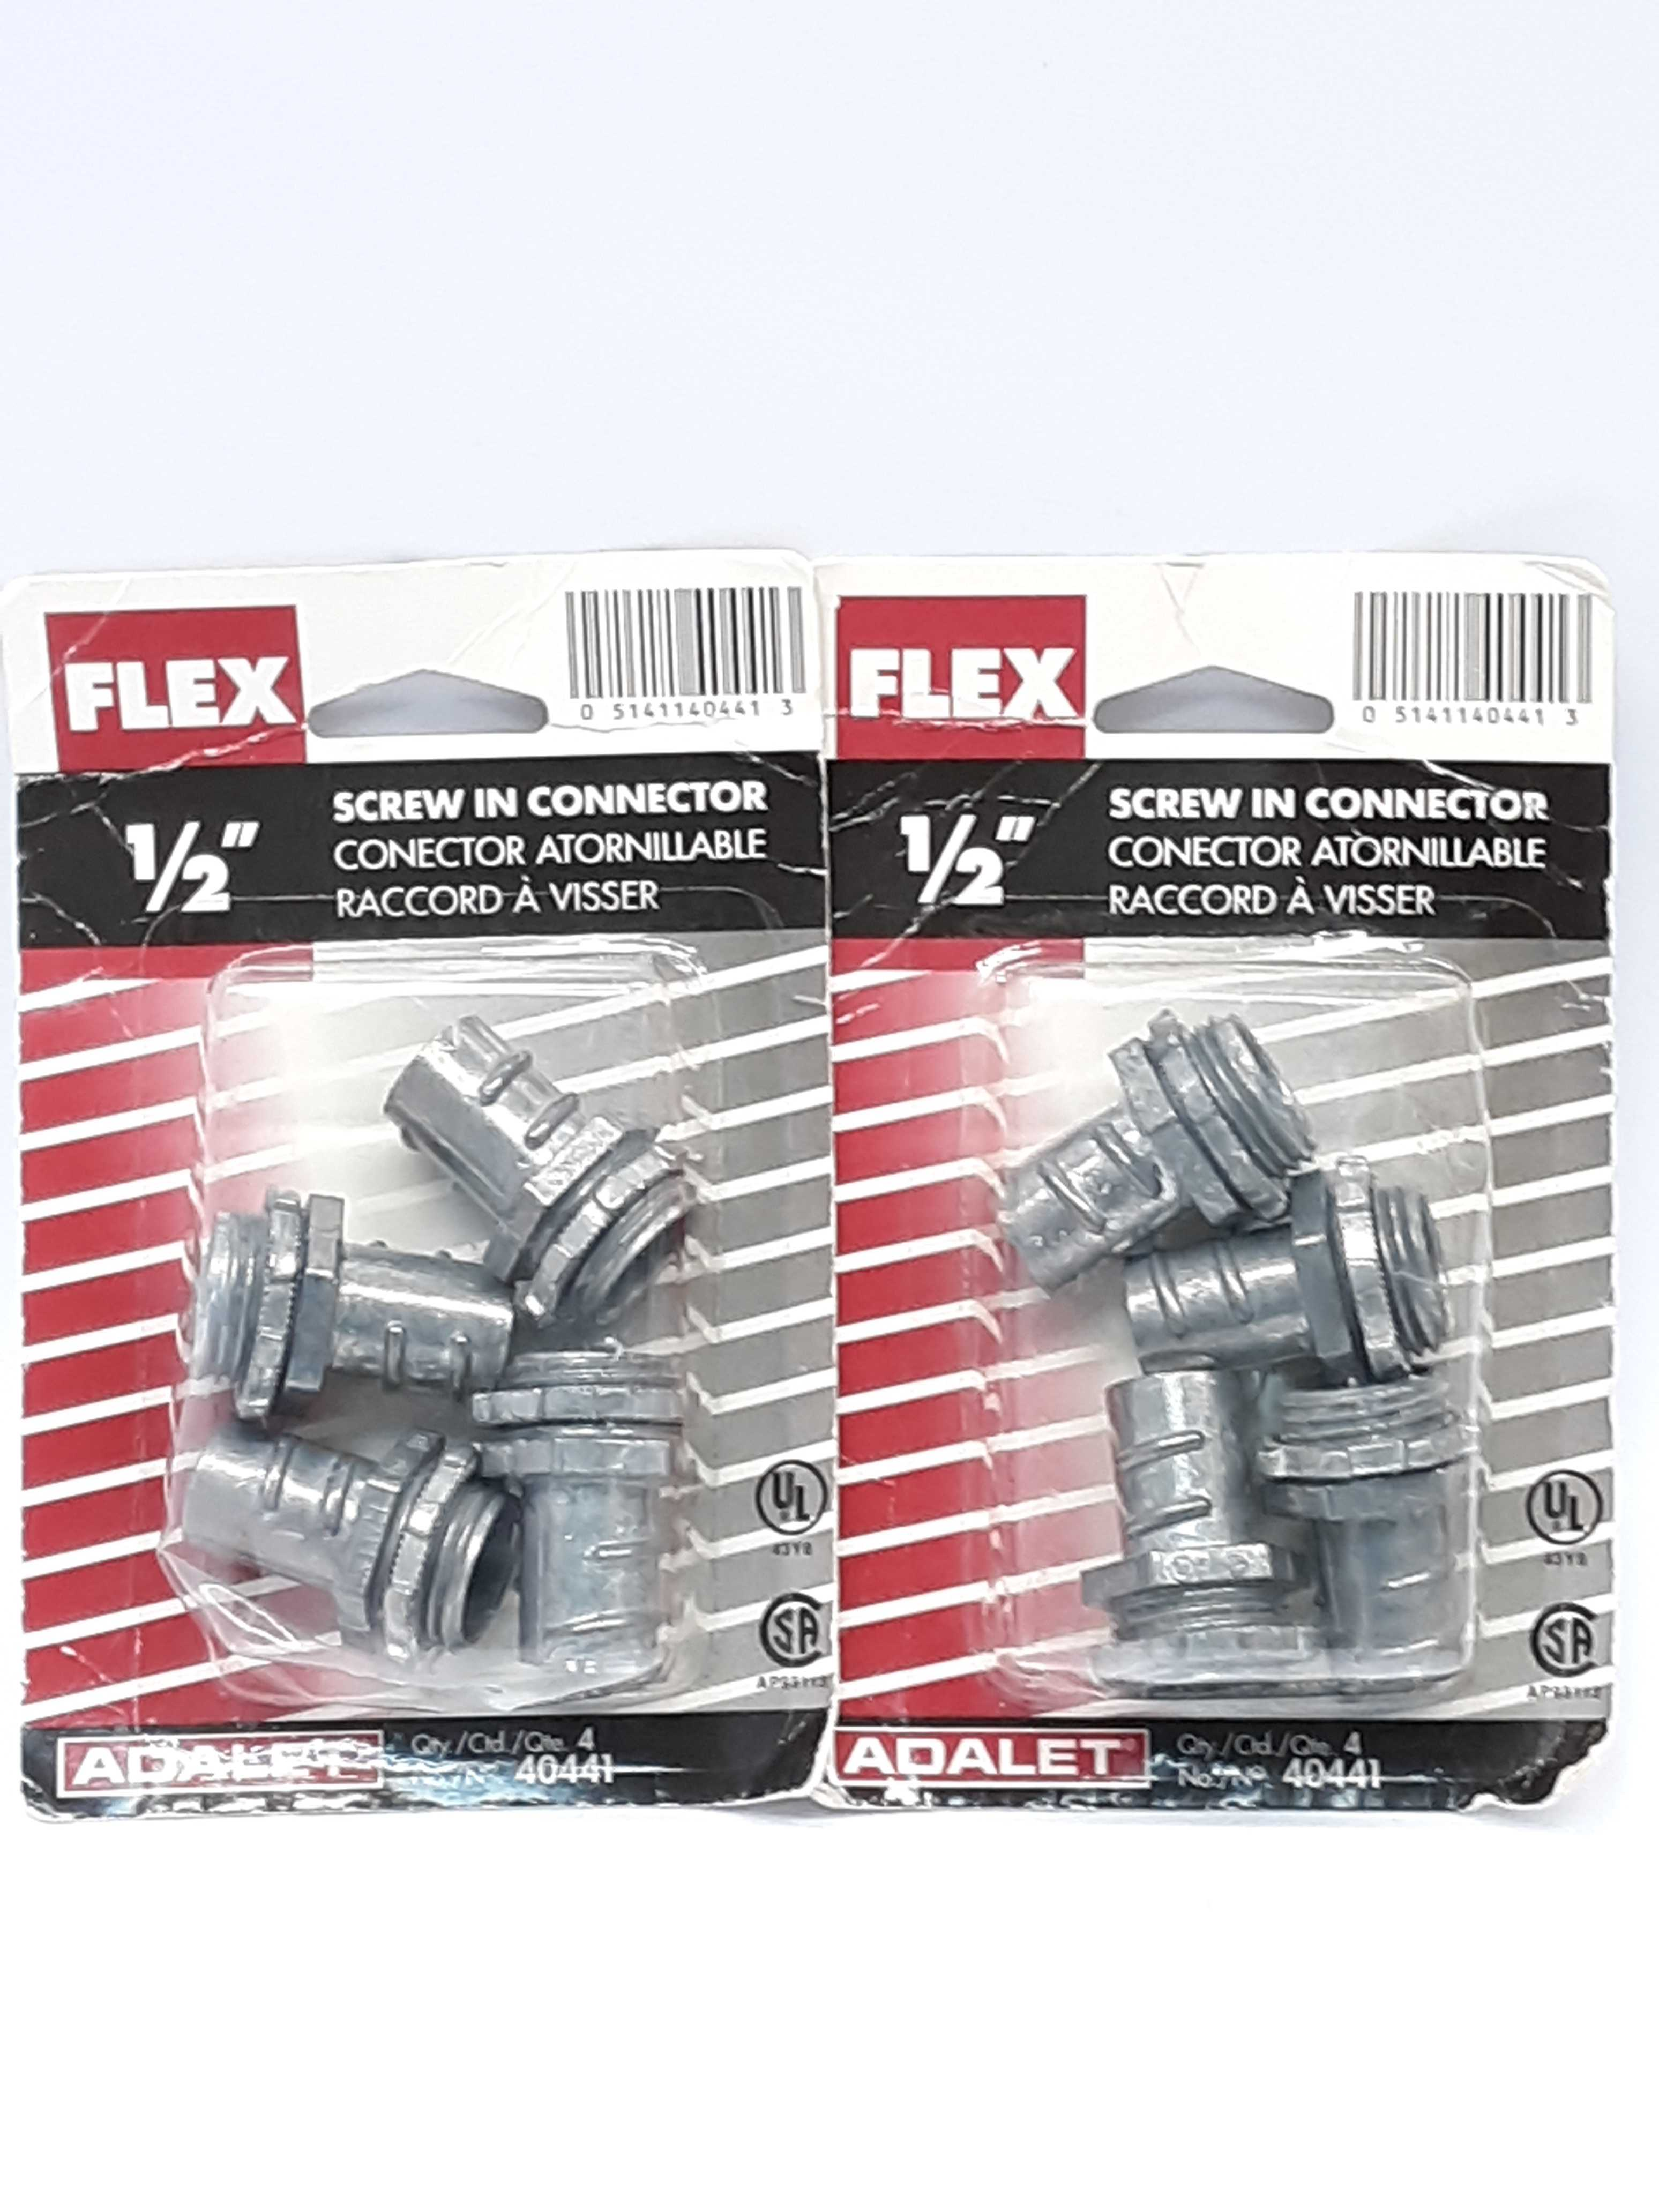 Flex 40441 Screw In Connector 1/2 Lot of 2